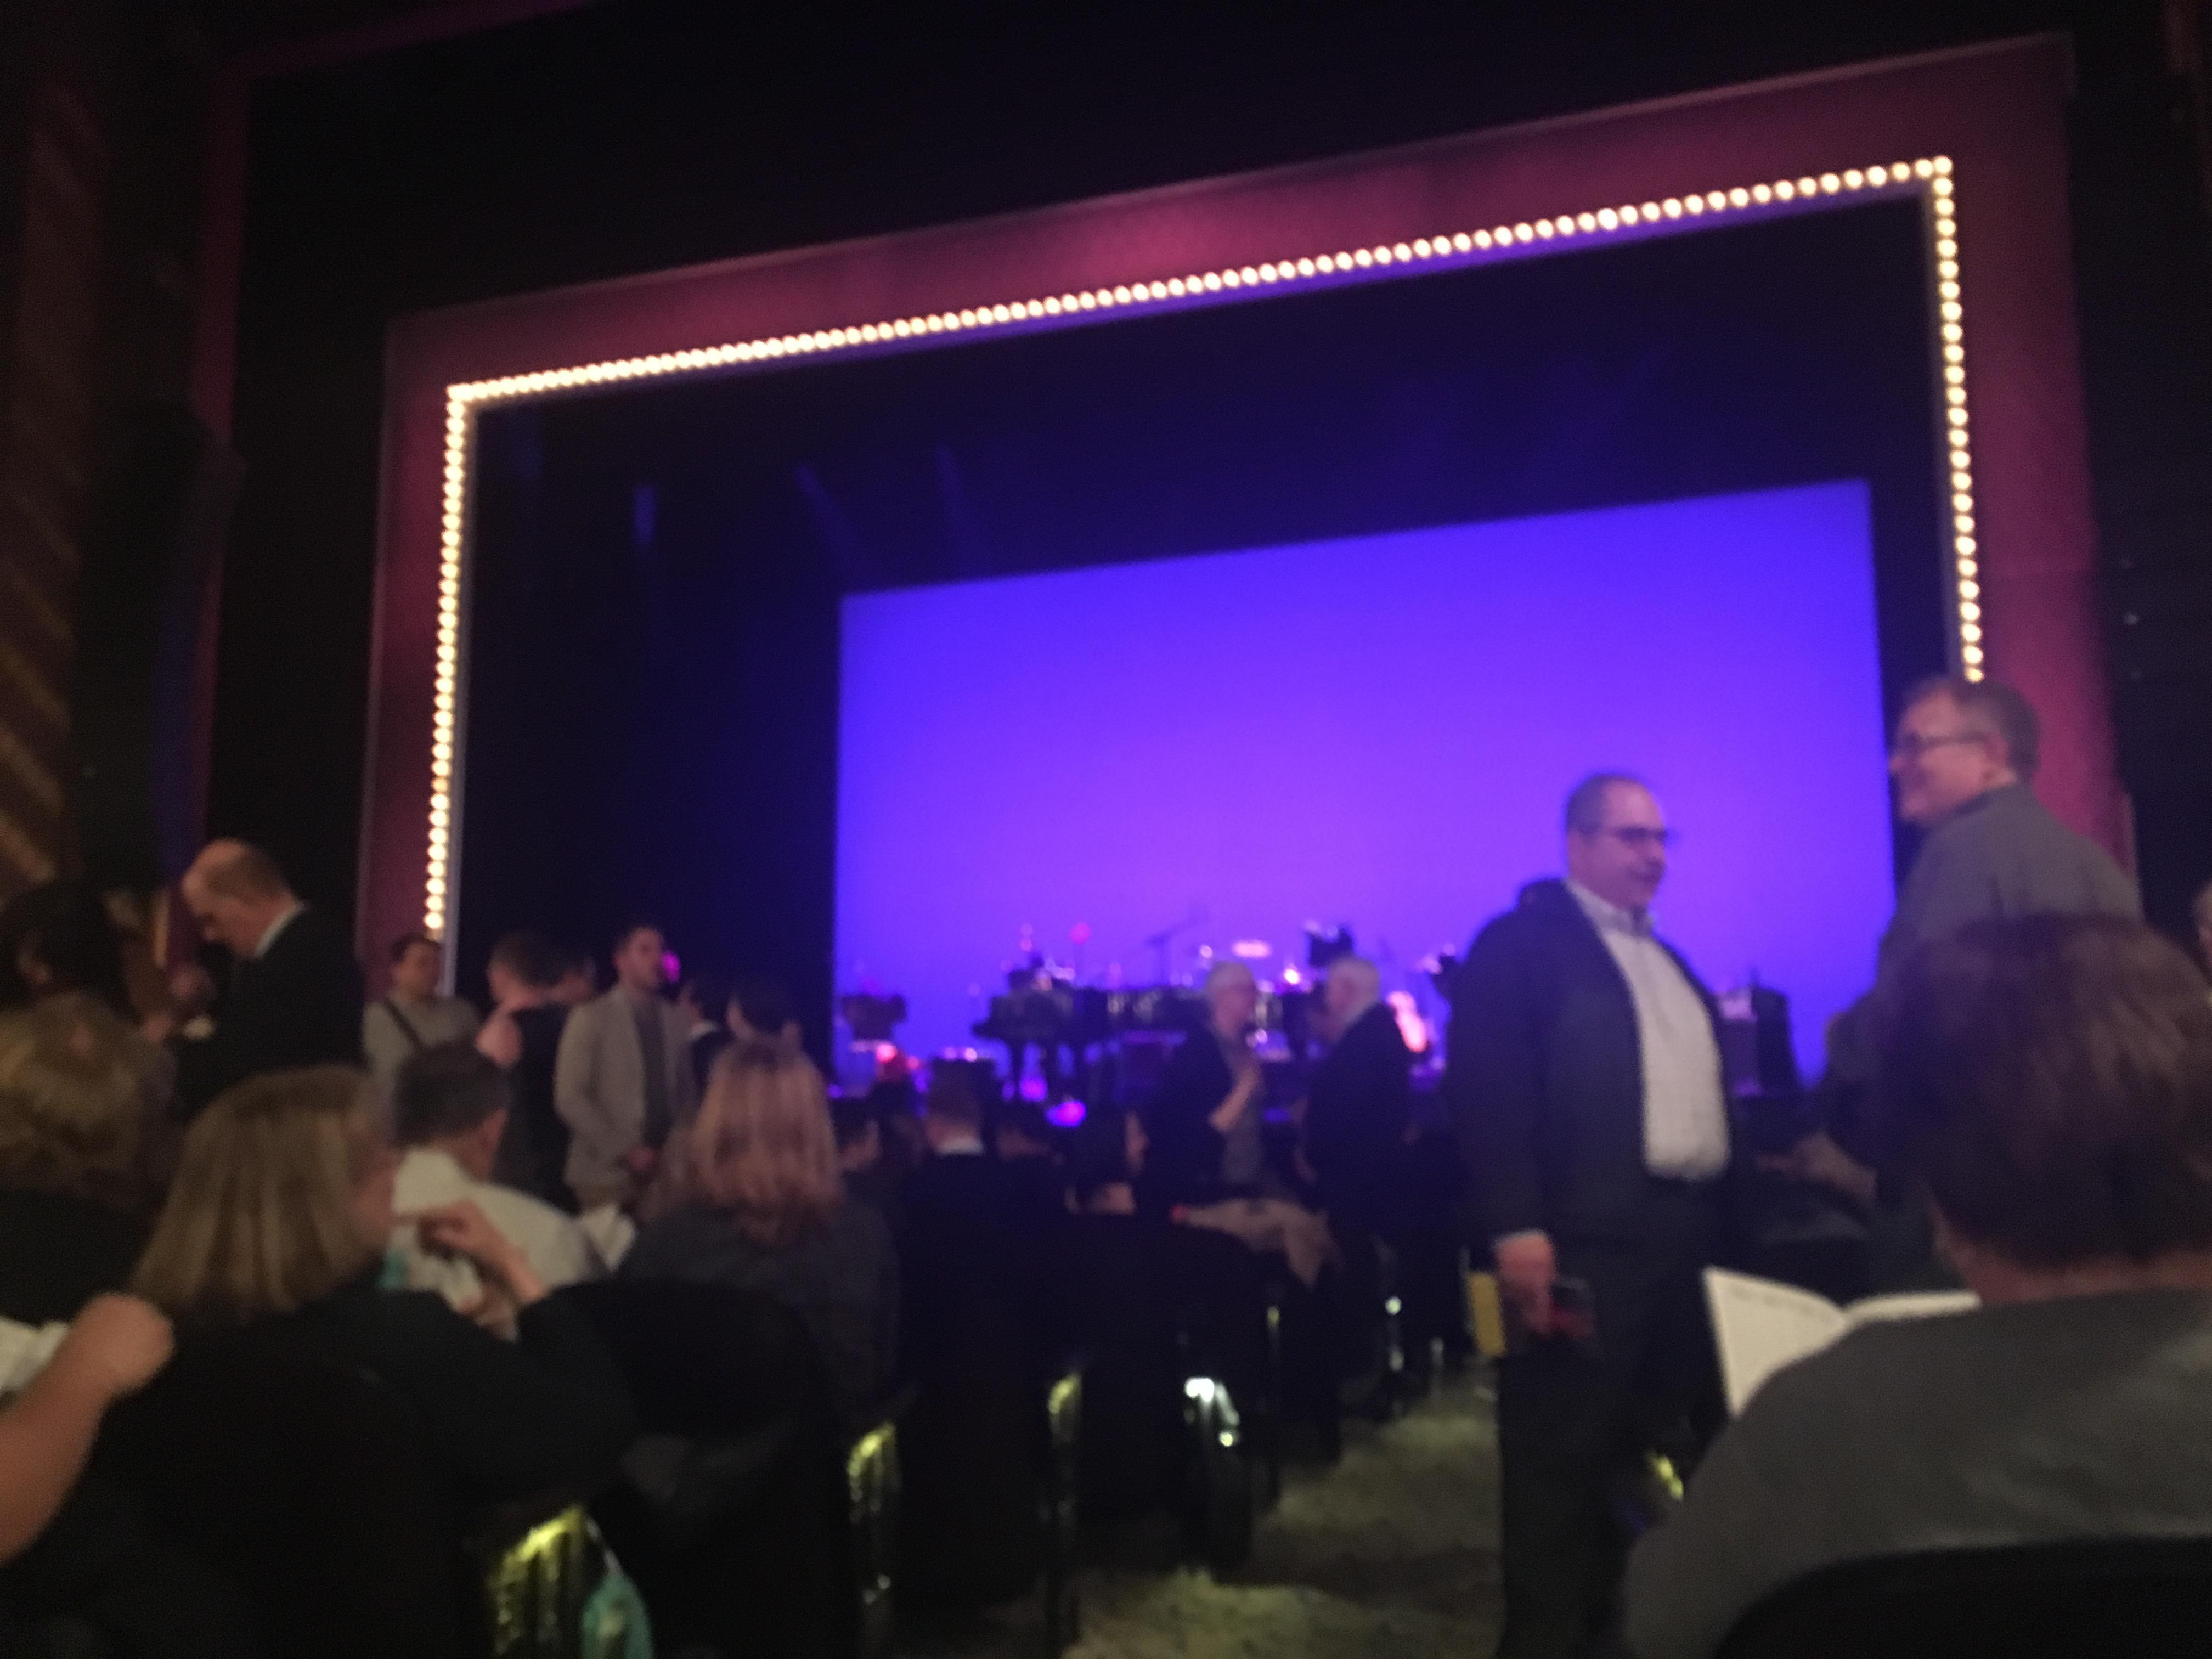 Lunt-Fontanne Theatre Section Orchestra R Row N Seat 2